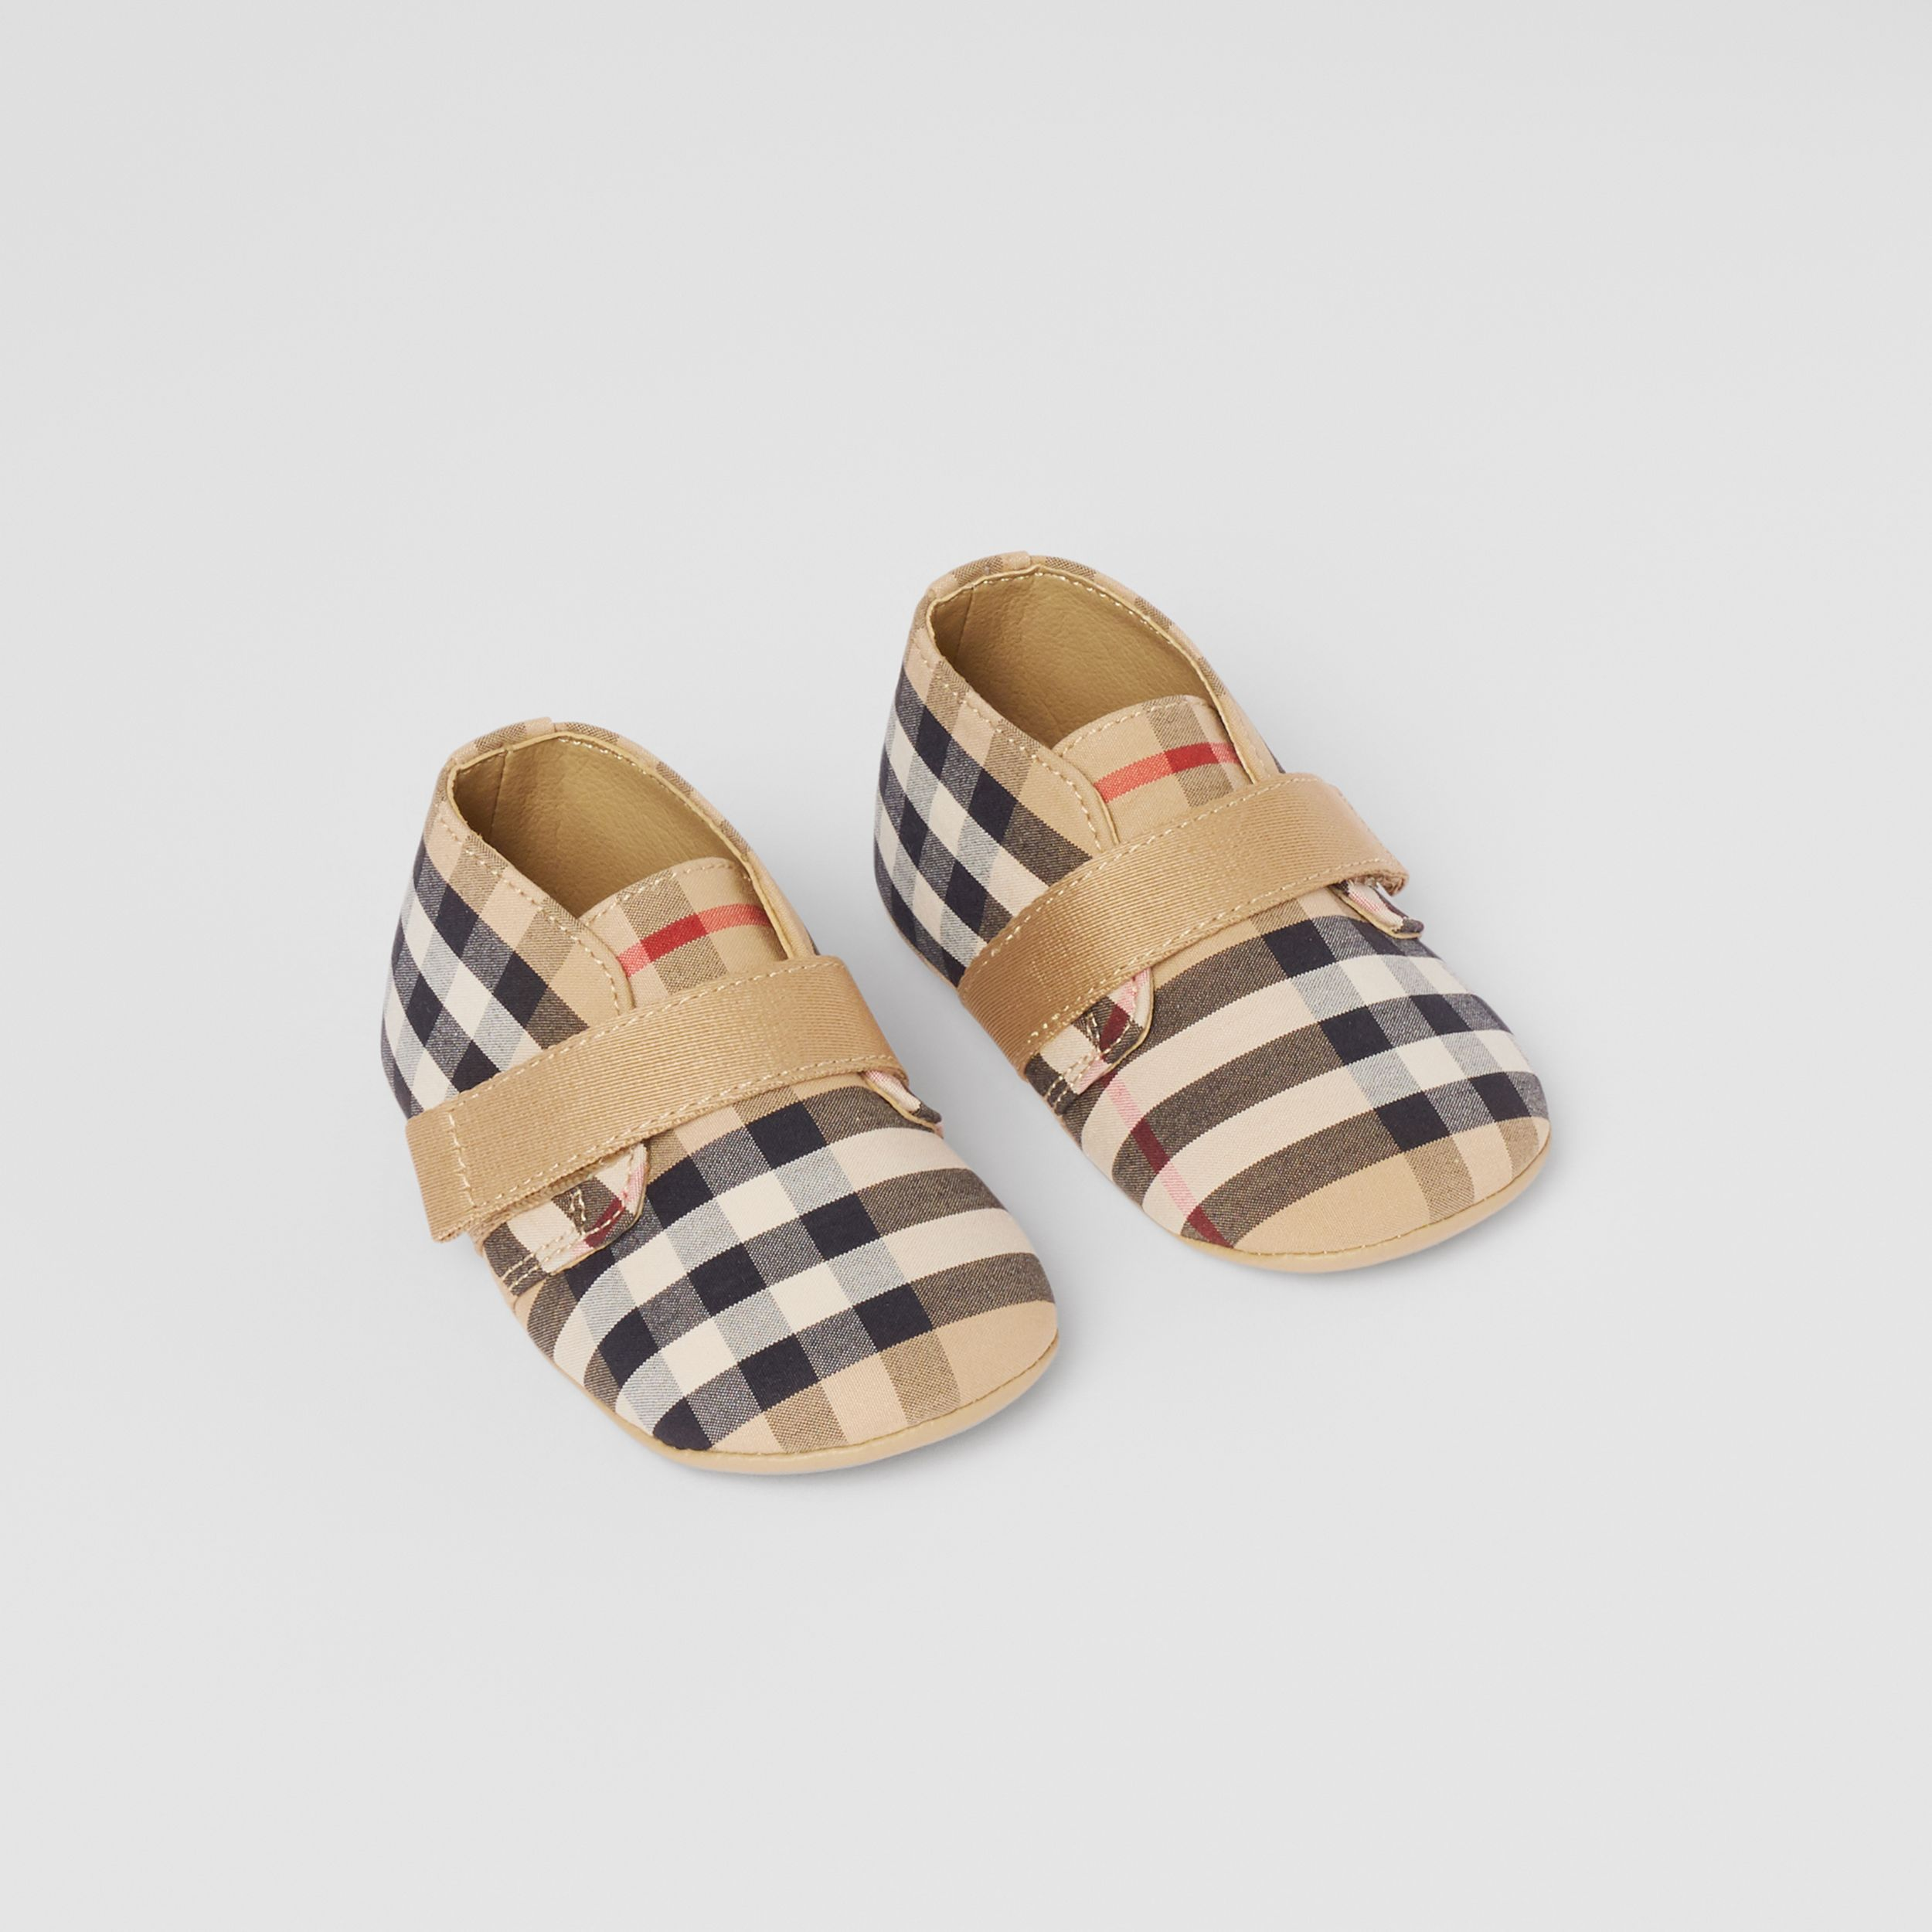 Vintage Check Cotton Booties in Archive Beige - Children | Burberry Hong Kong S.A.R. - 1